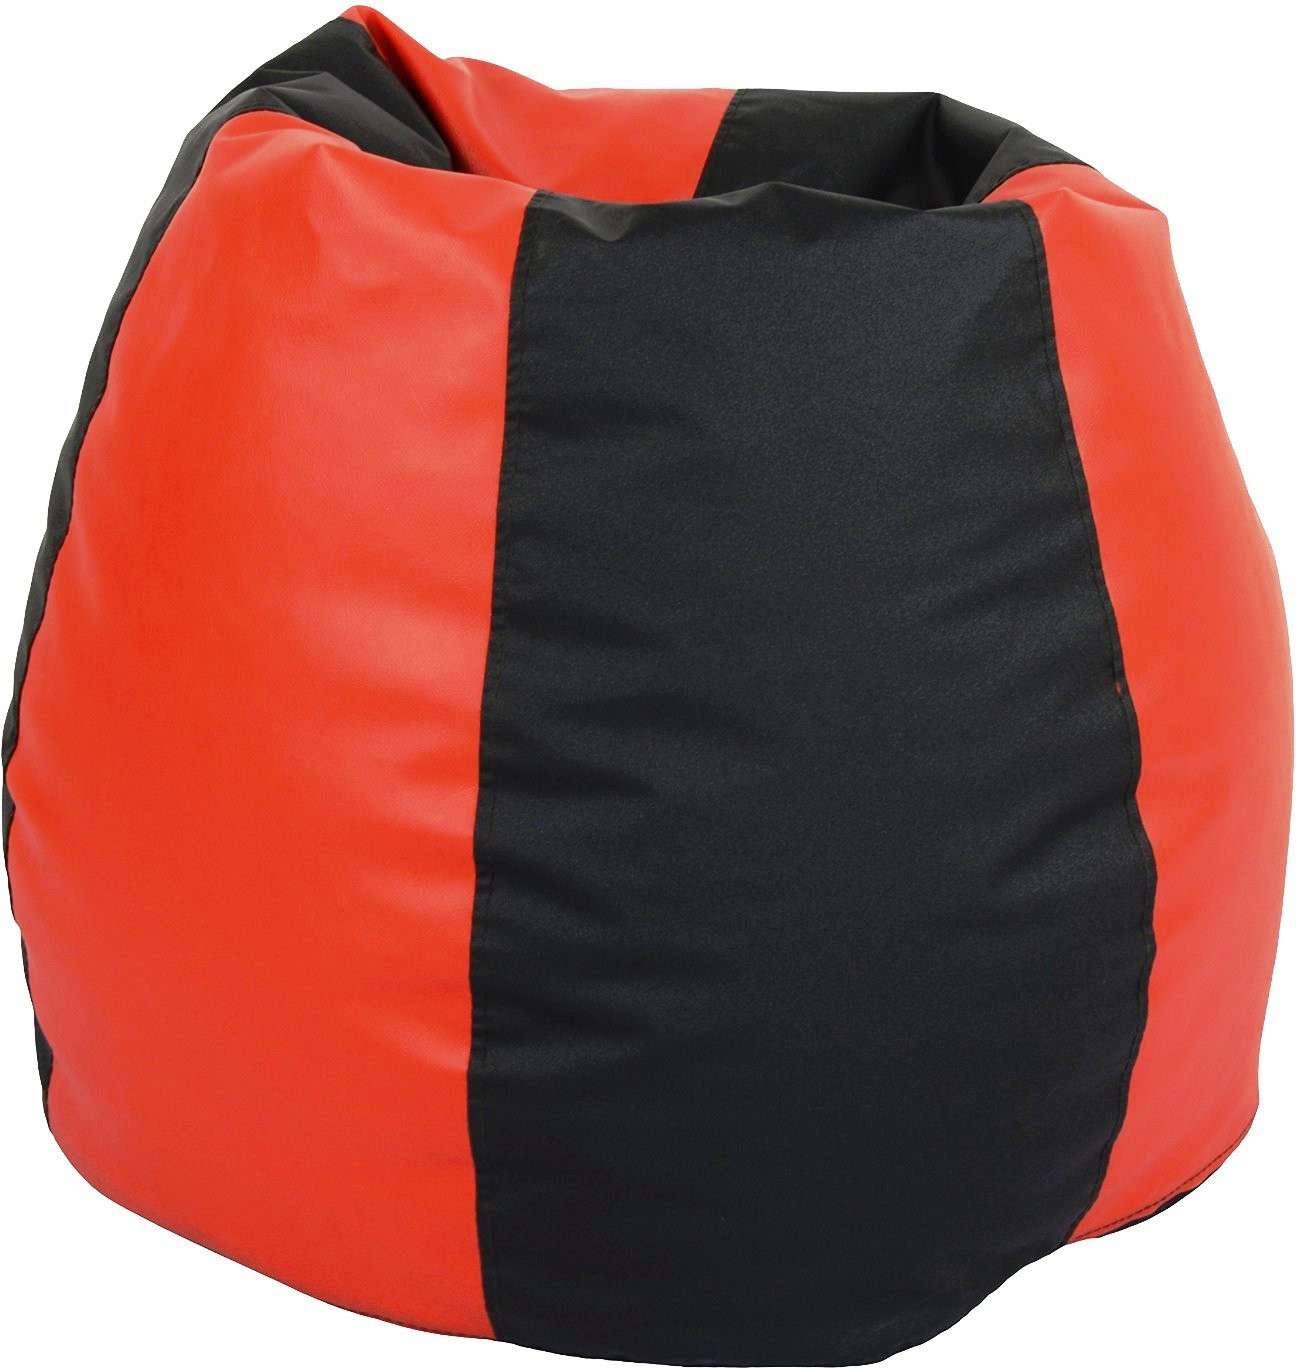 Deals | Space Saving Bean Bags with Beans